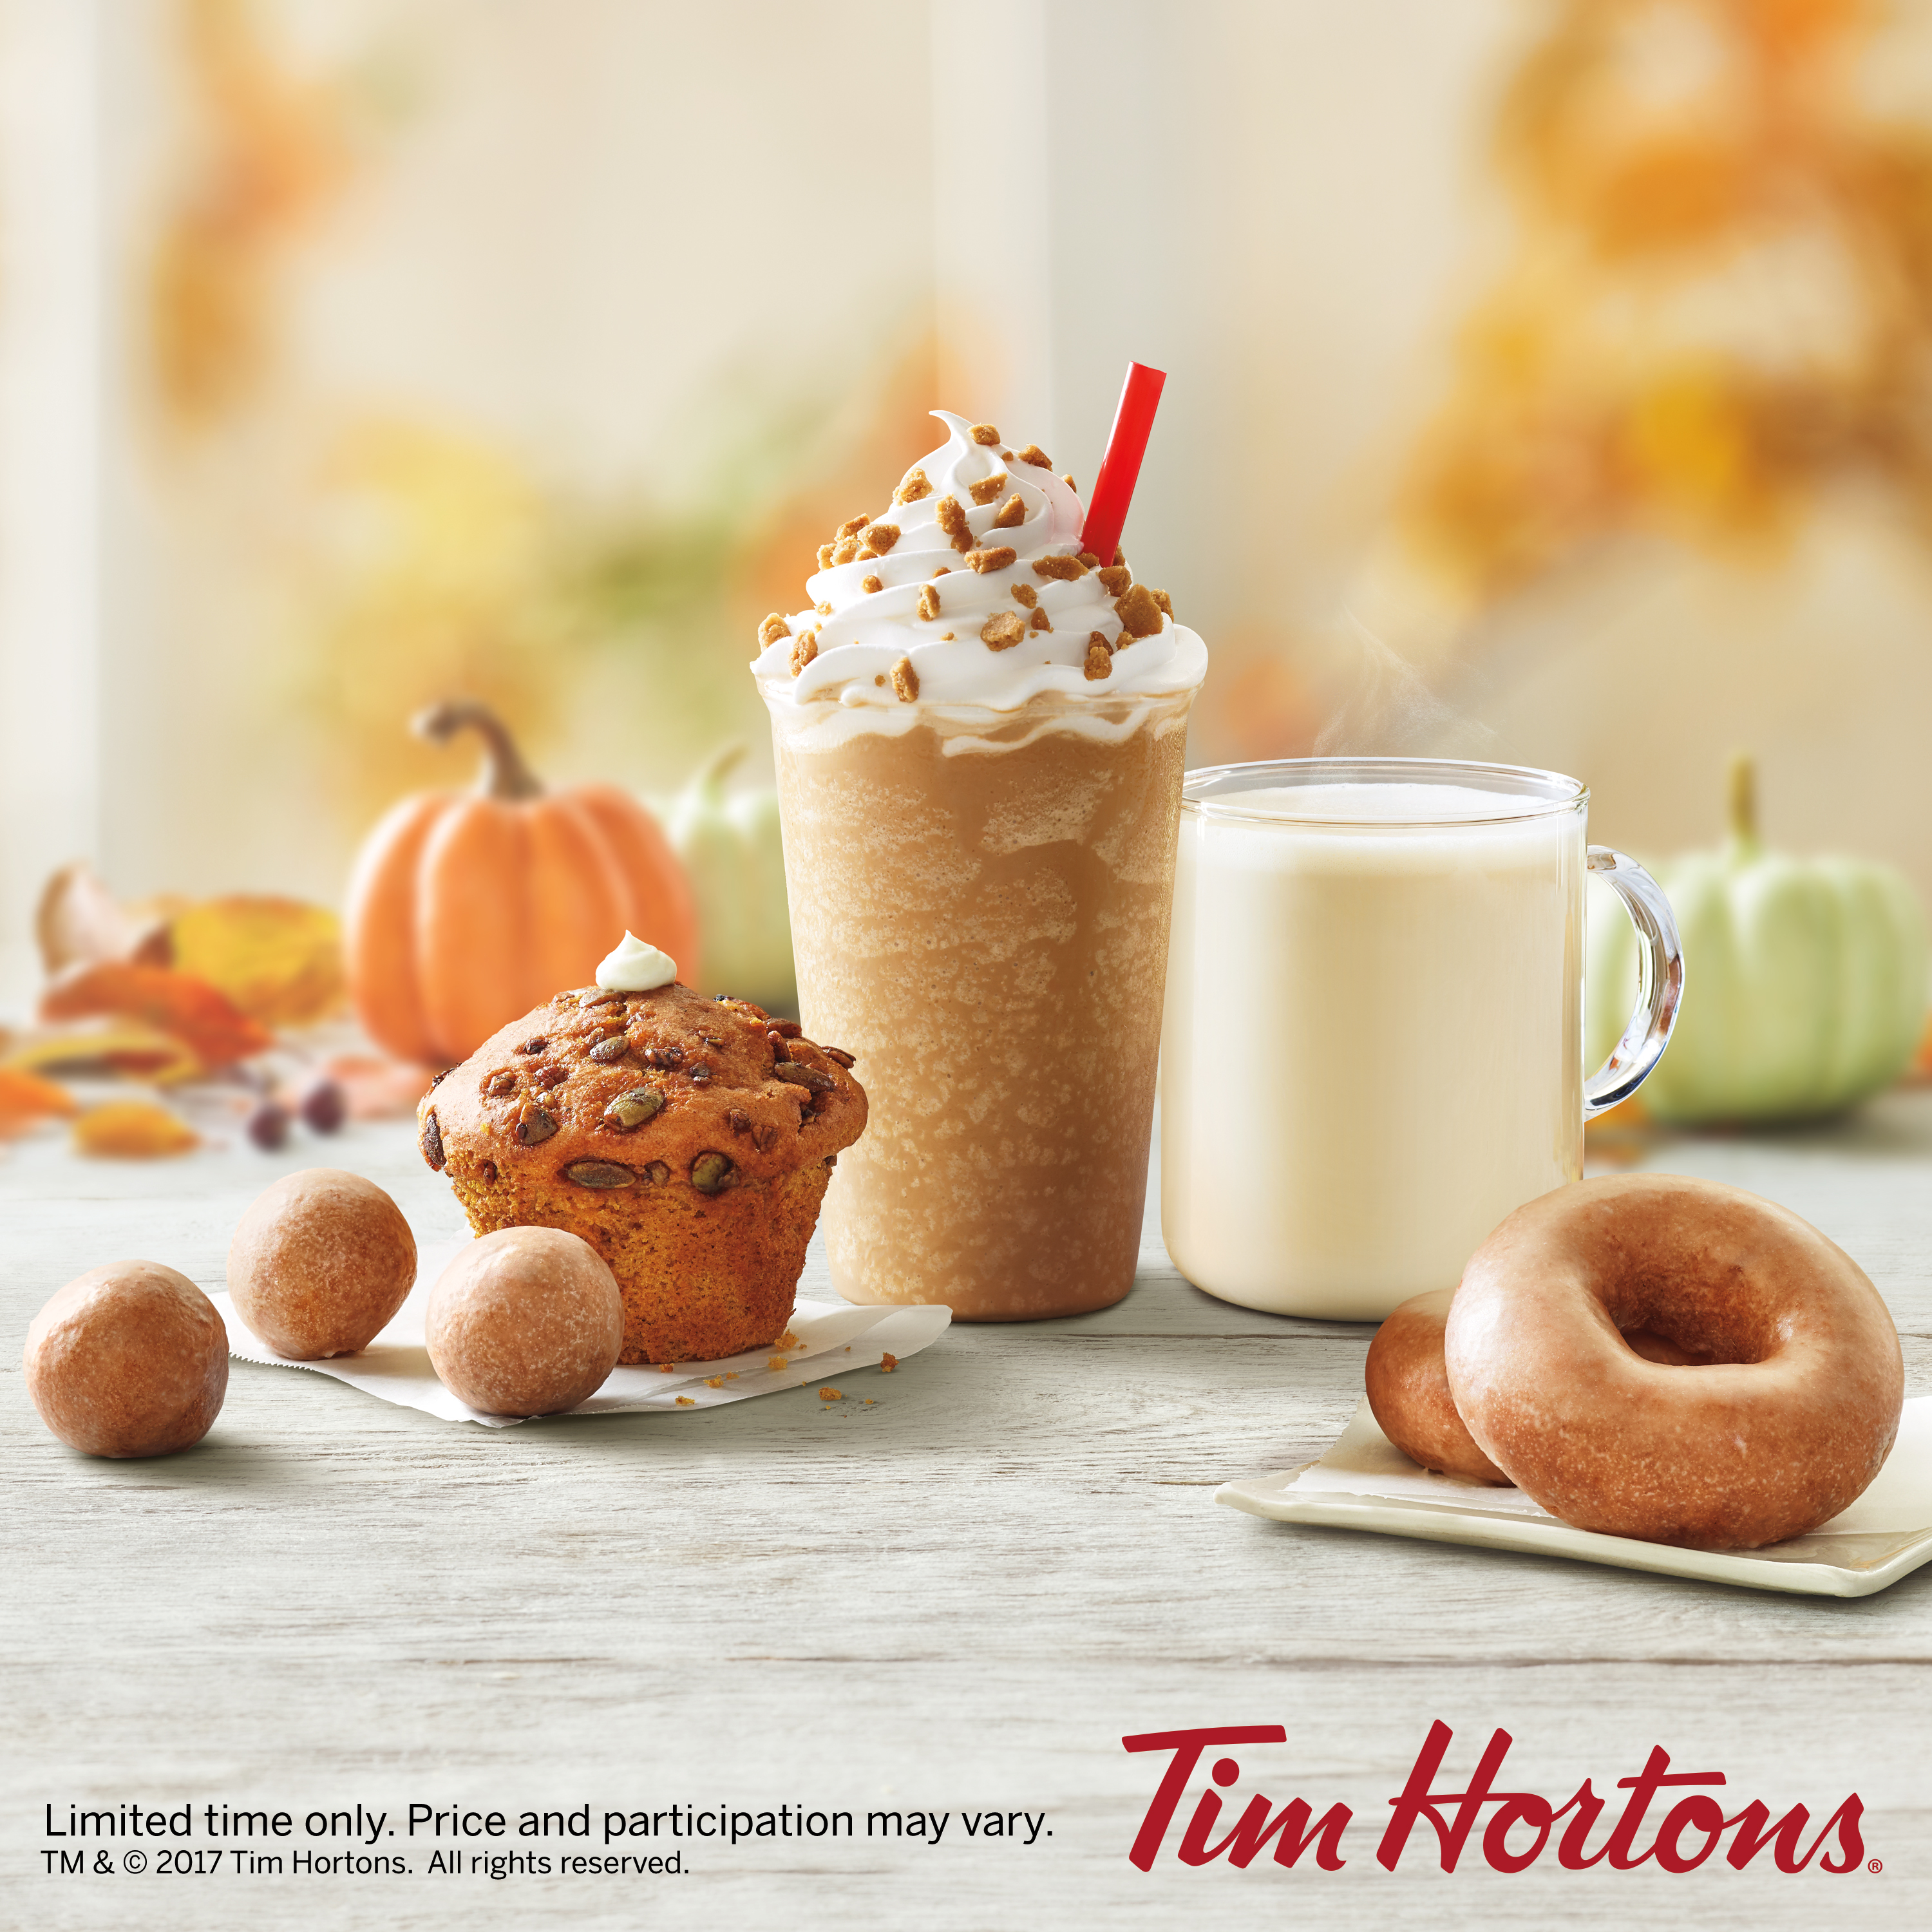 tim hortons celebrates fall with pumpkin spice product lineup